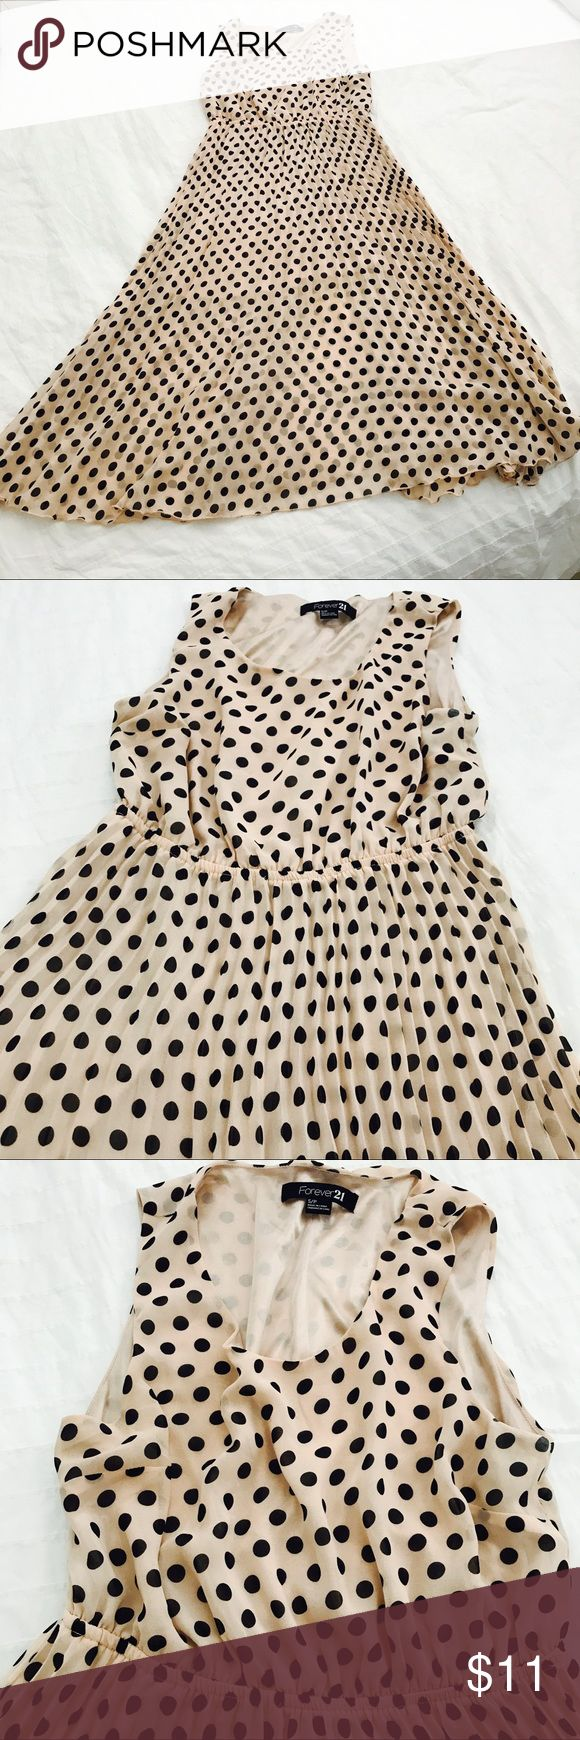 Forever 21 light pink and black polka dot dress Forever 21 light pink and black polka dot dress. The dress is pleated. It's inner lining is a shorter dress. Forever 21 Dresses Midi